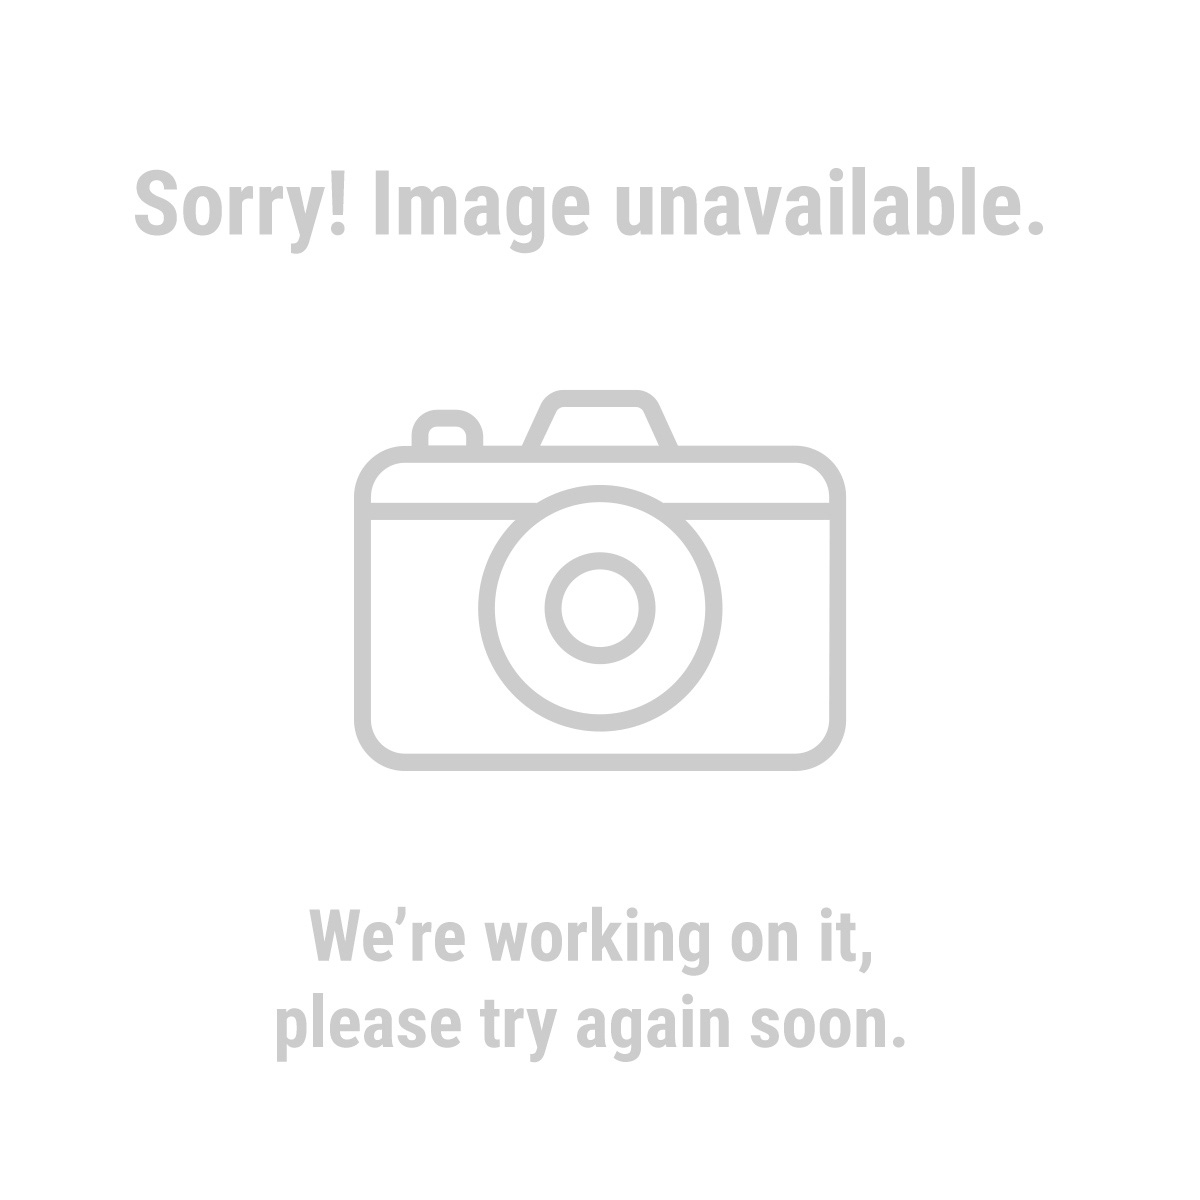 Storehouse 91883 4-Tier Shelf Rack